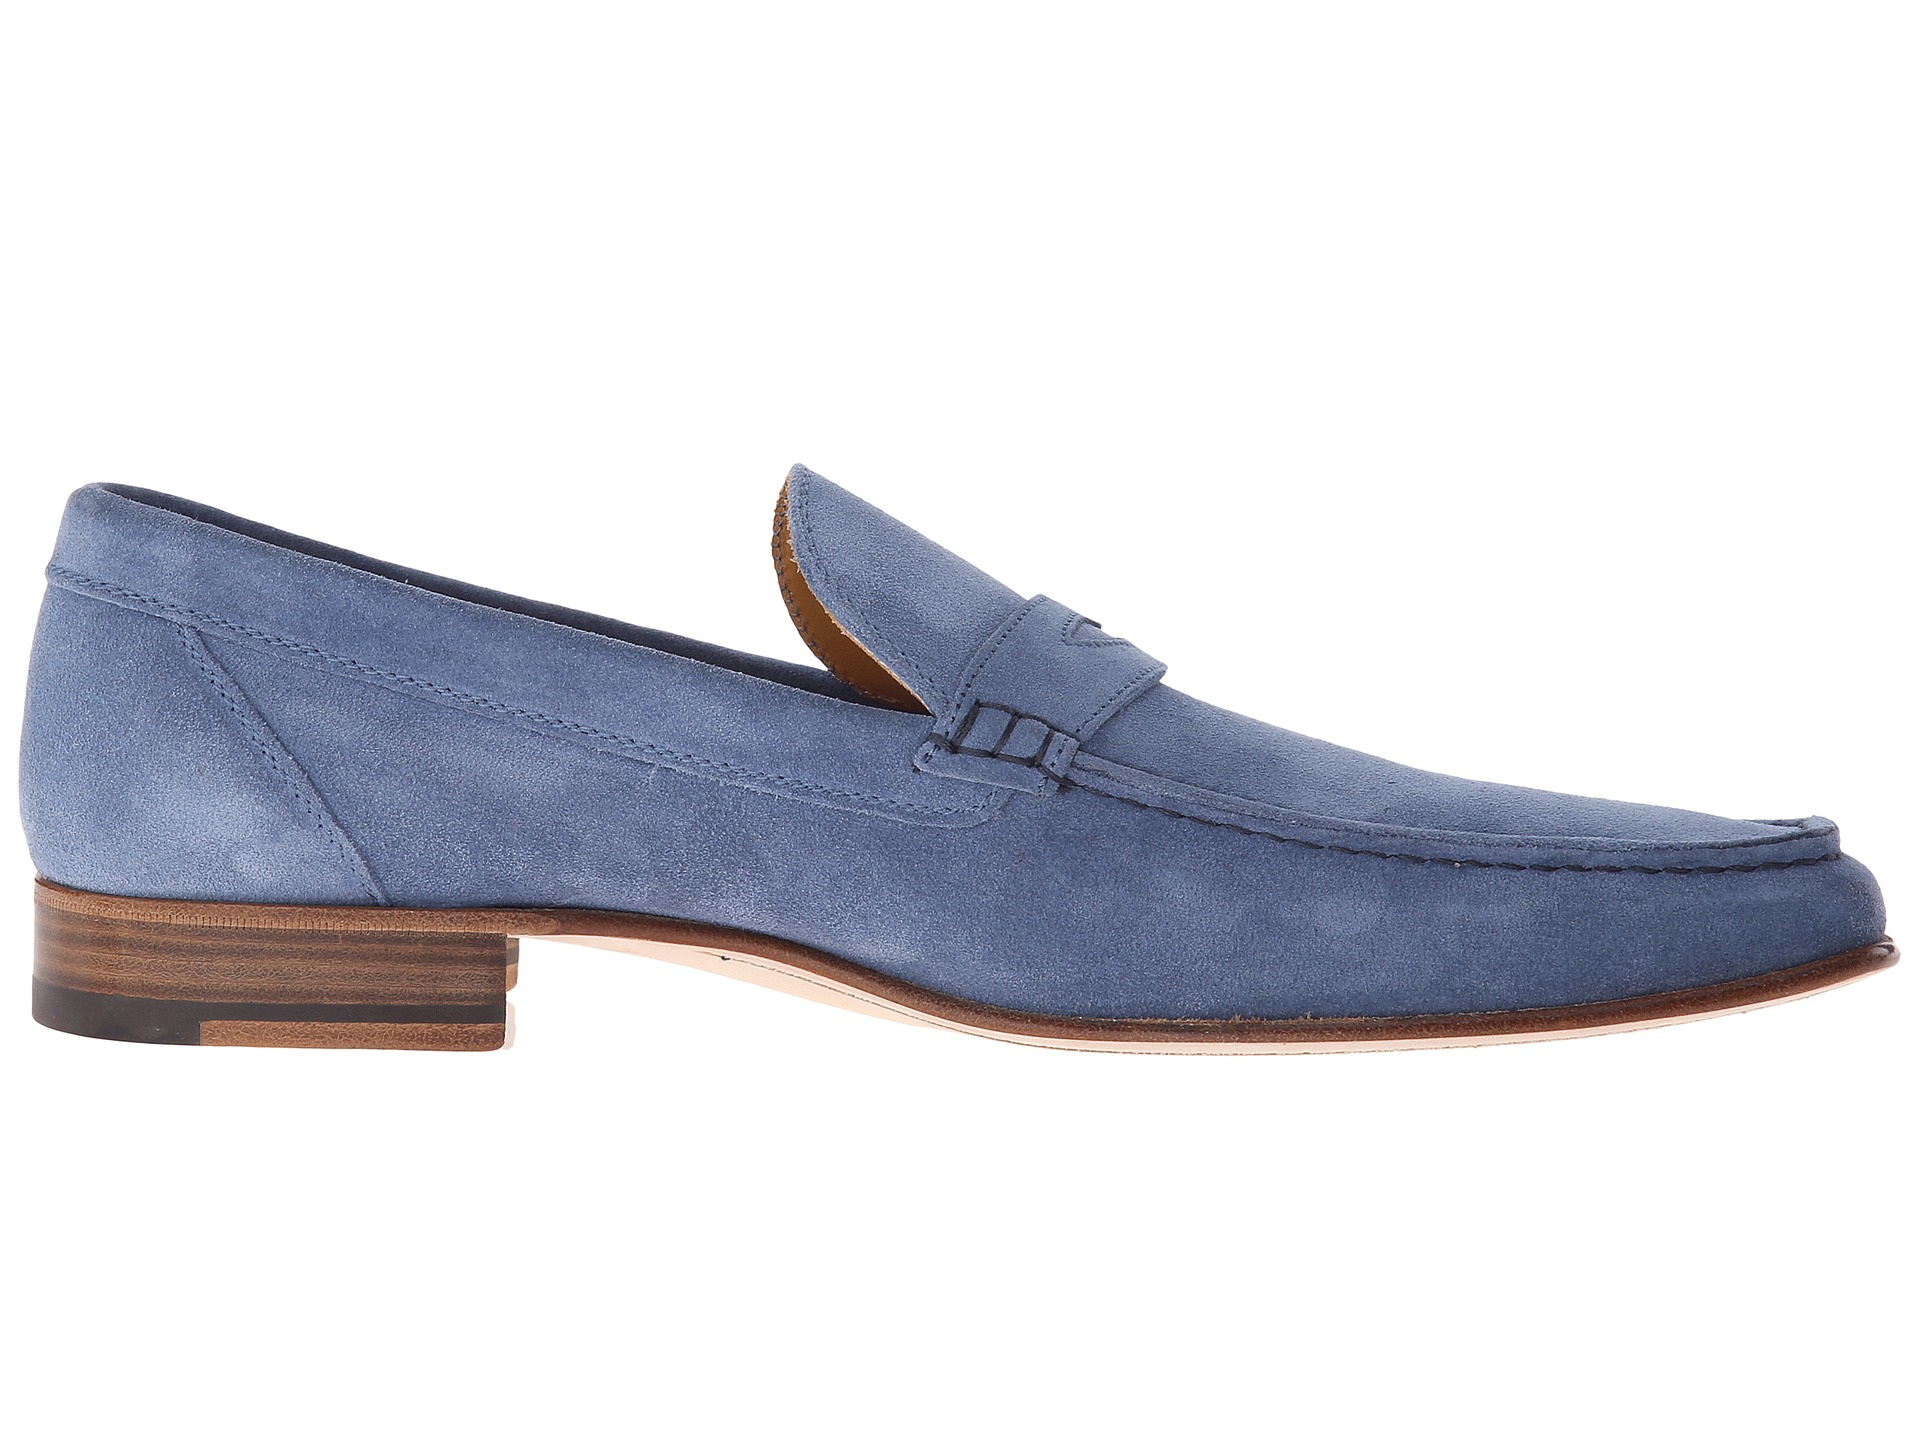 A.Testoni Unlined Suede Penny Loafer in Blue for Men - Lyst